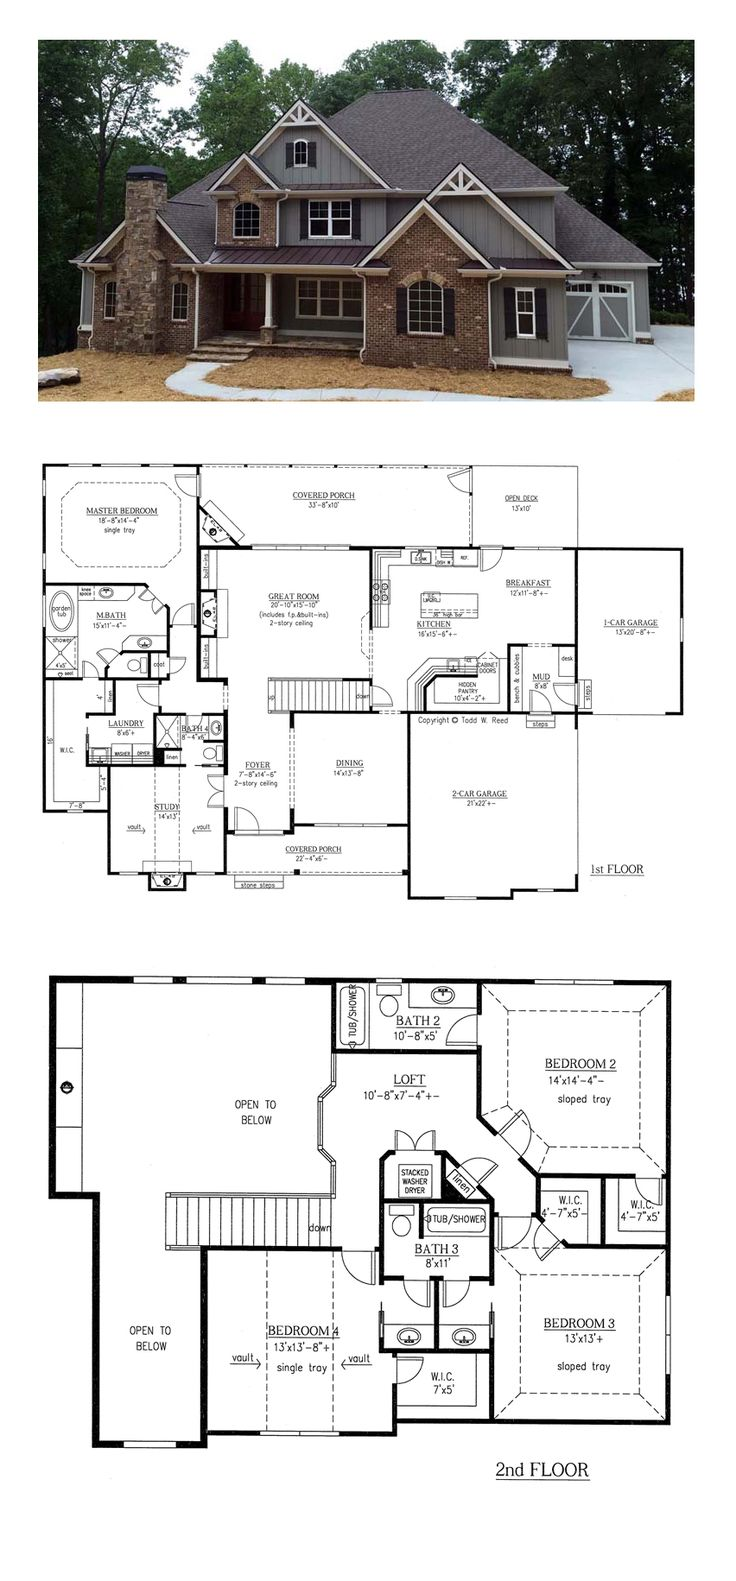 Best 25 dream house plans ideas on pinterest house for Dream house blueprints